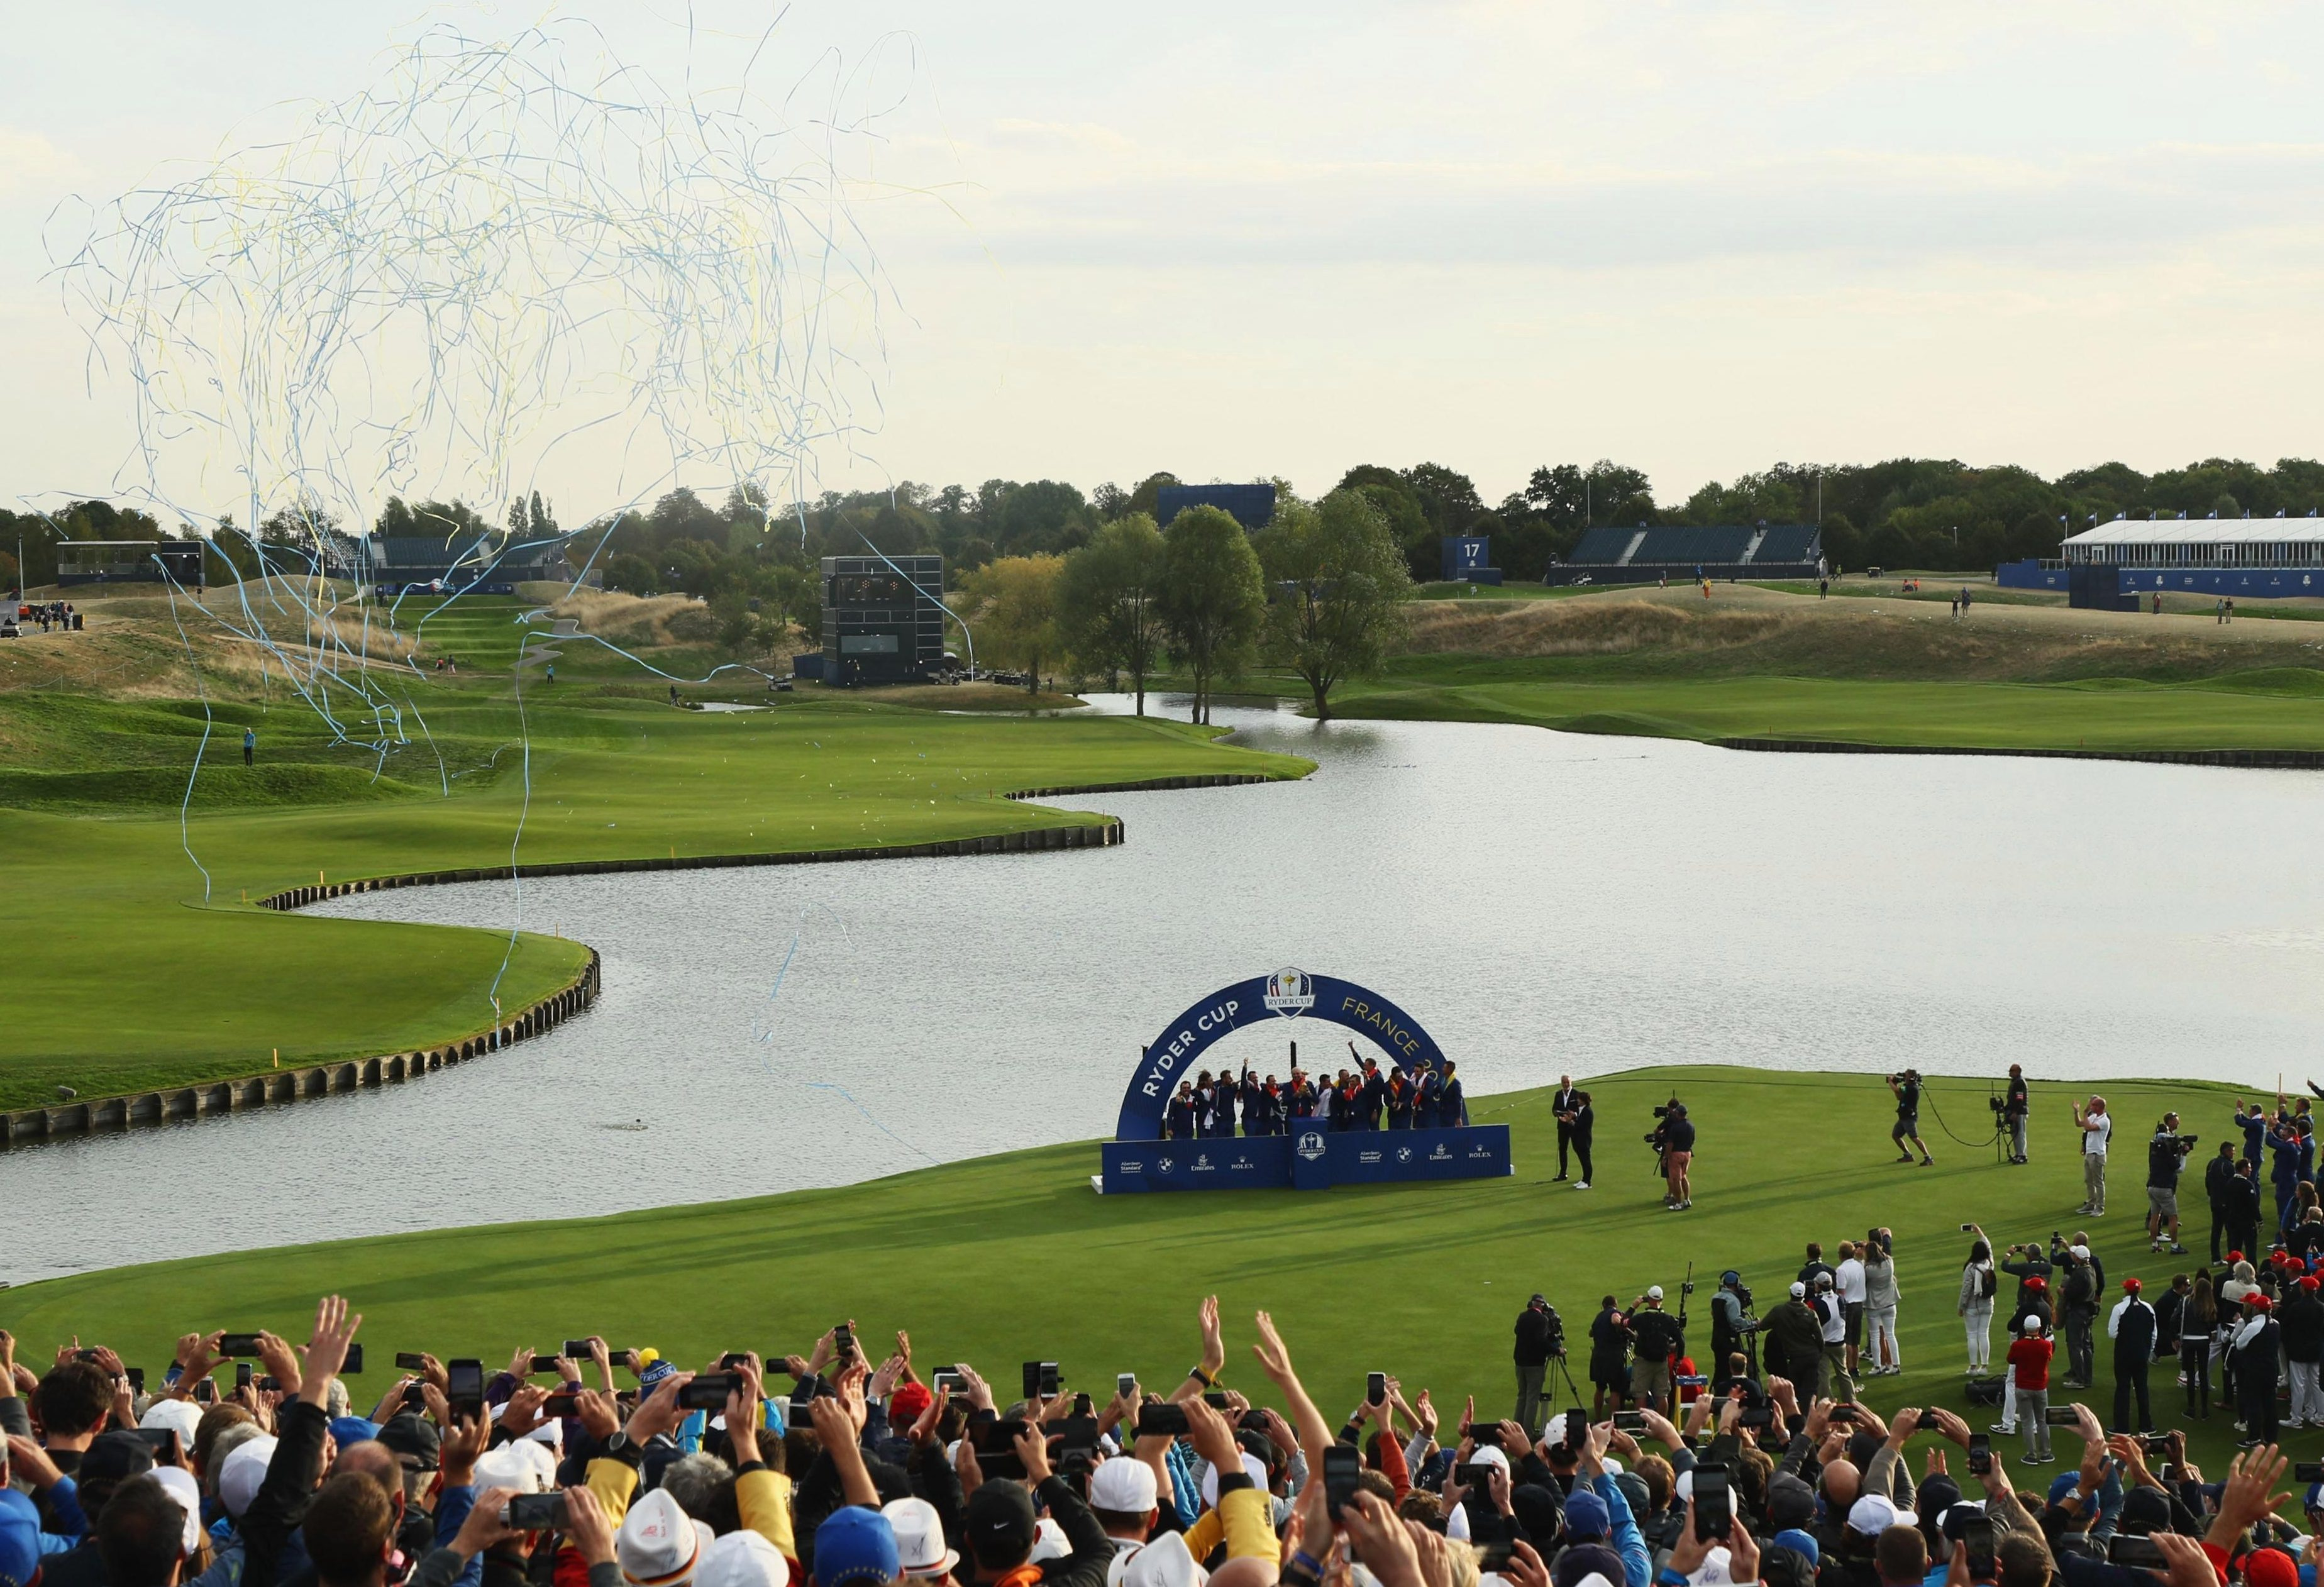 Team USA have been moaning about several factors; Mickelson's latest rant calls this year's Ryder Cup a 'waste of time'